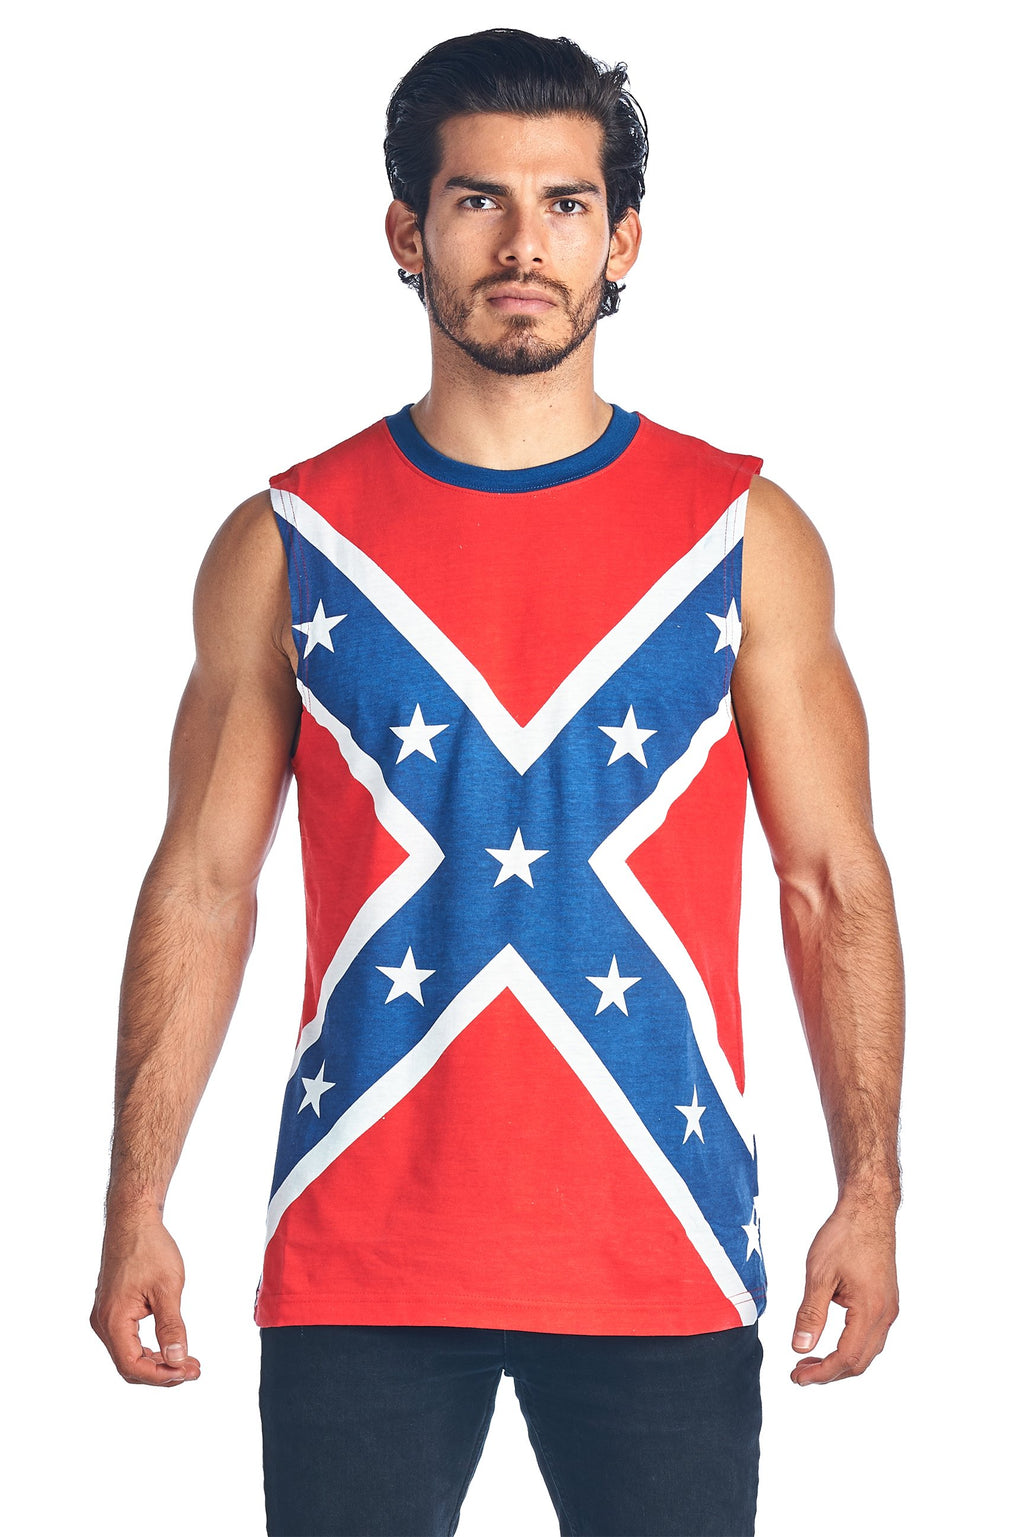 Men's Confederate Rebel Flag Sleeveless Shirt Southern Dixie Redneck Pride